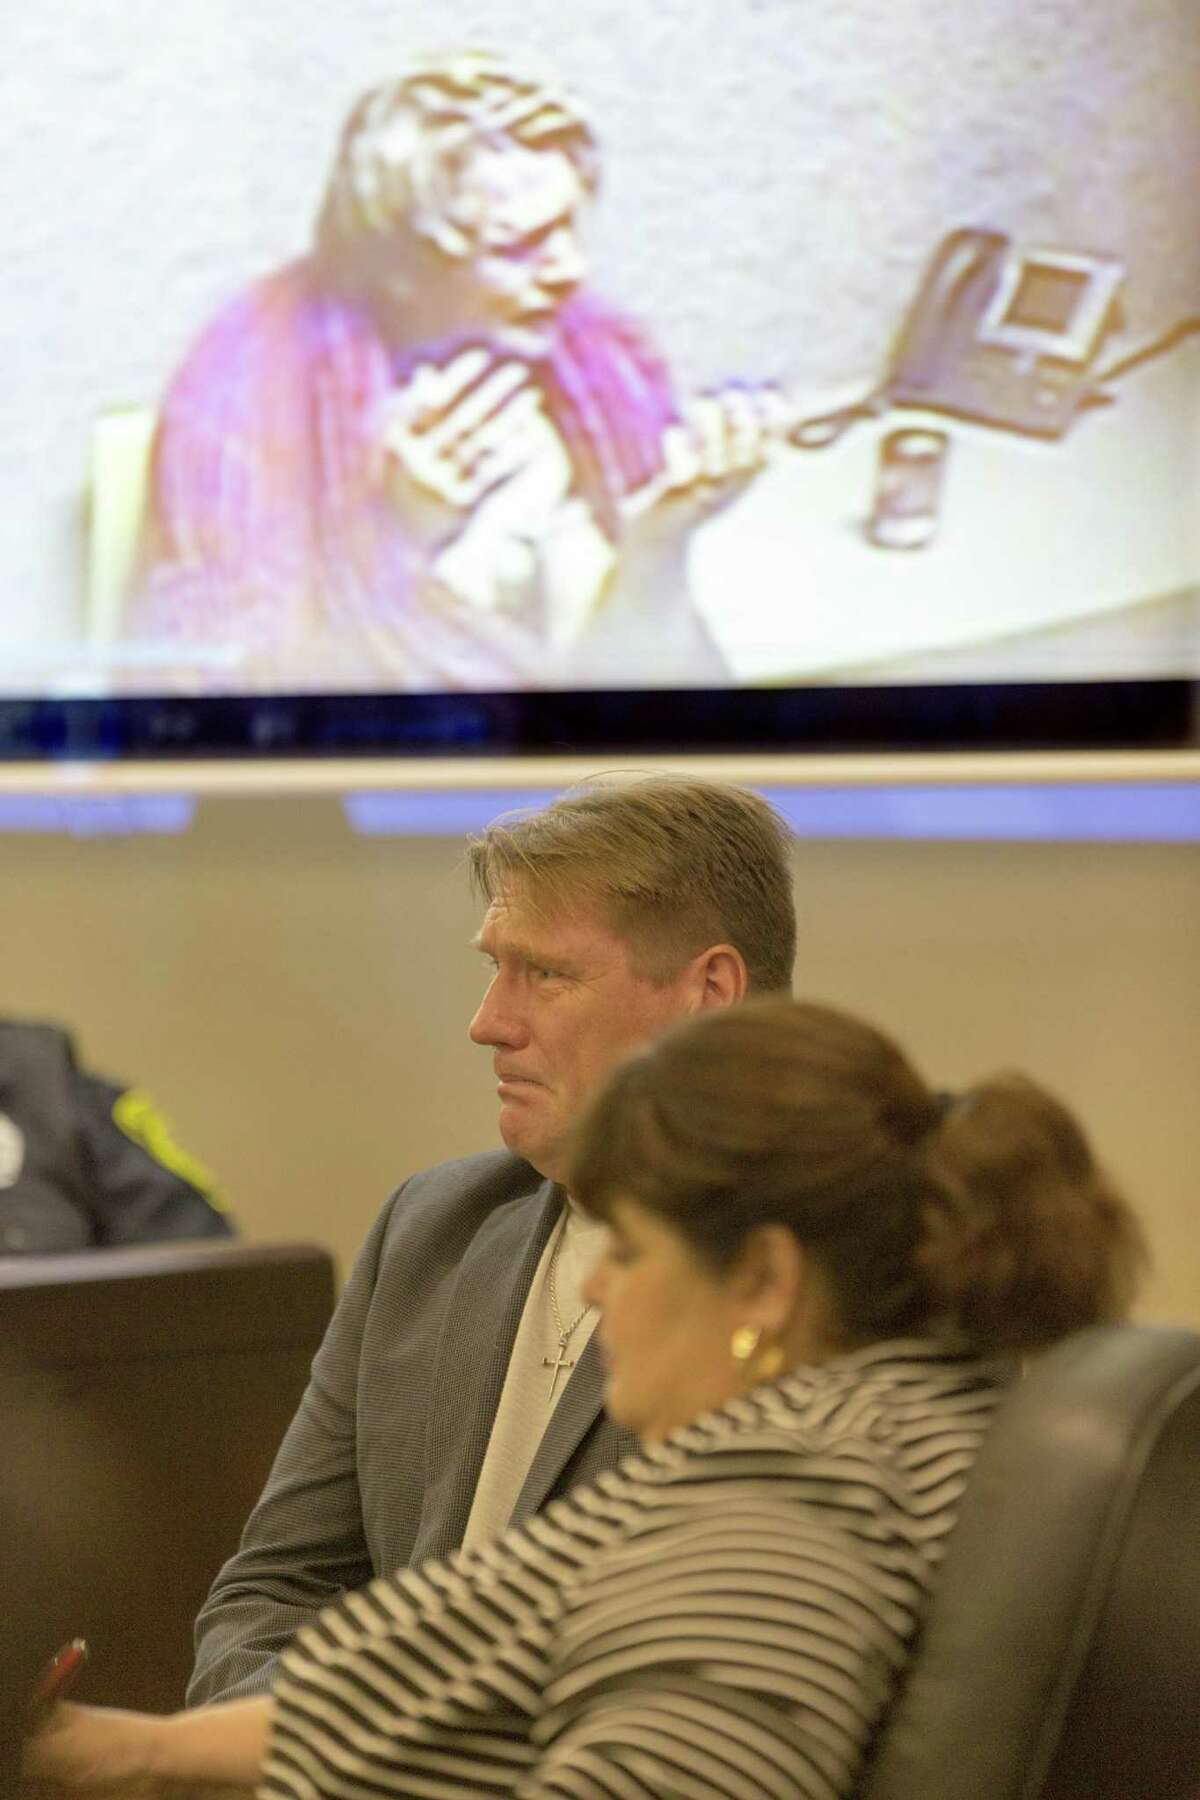 Interrogation room video is projected Tuesday, Dec, 13, 2016 above defendant Lars Itzo's head during his murder trial for the shooting death of his wife Debora Kelly. Itzo admitted to investigators during questioning he shot his wife but he said he thought she was an intruder